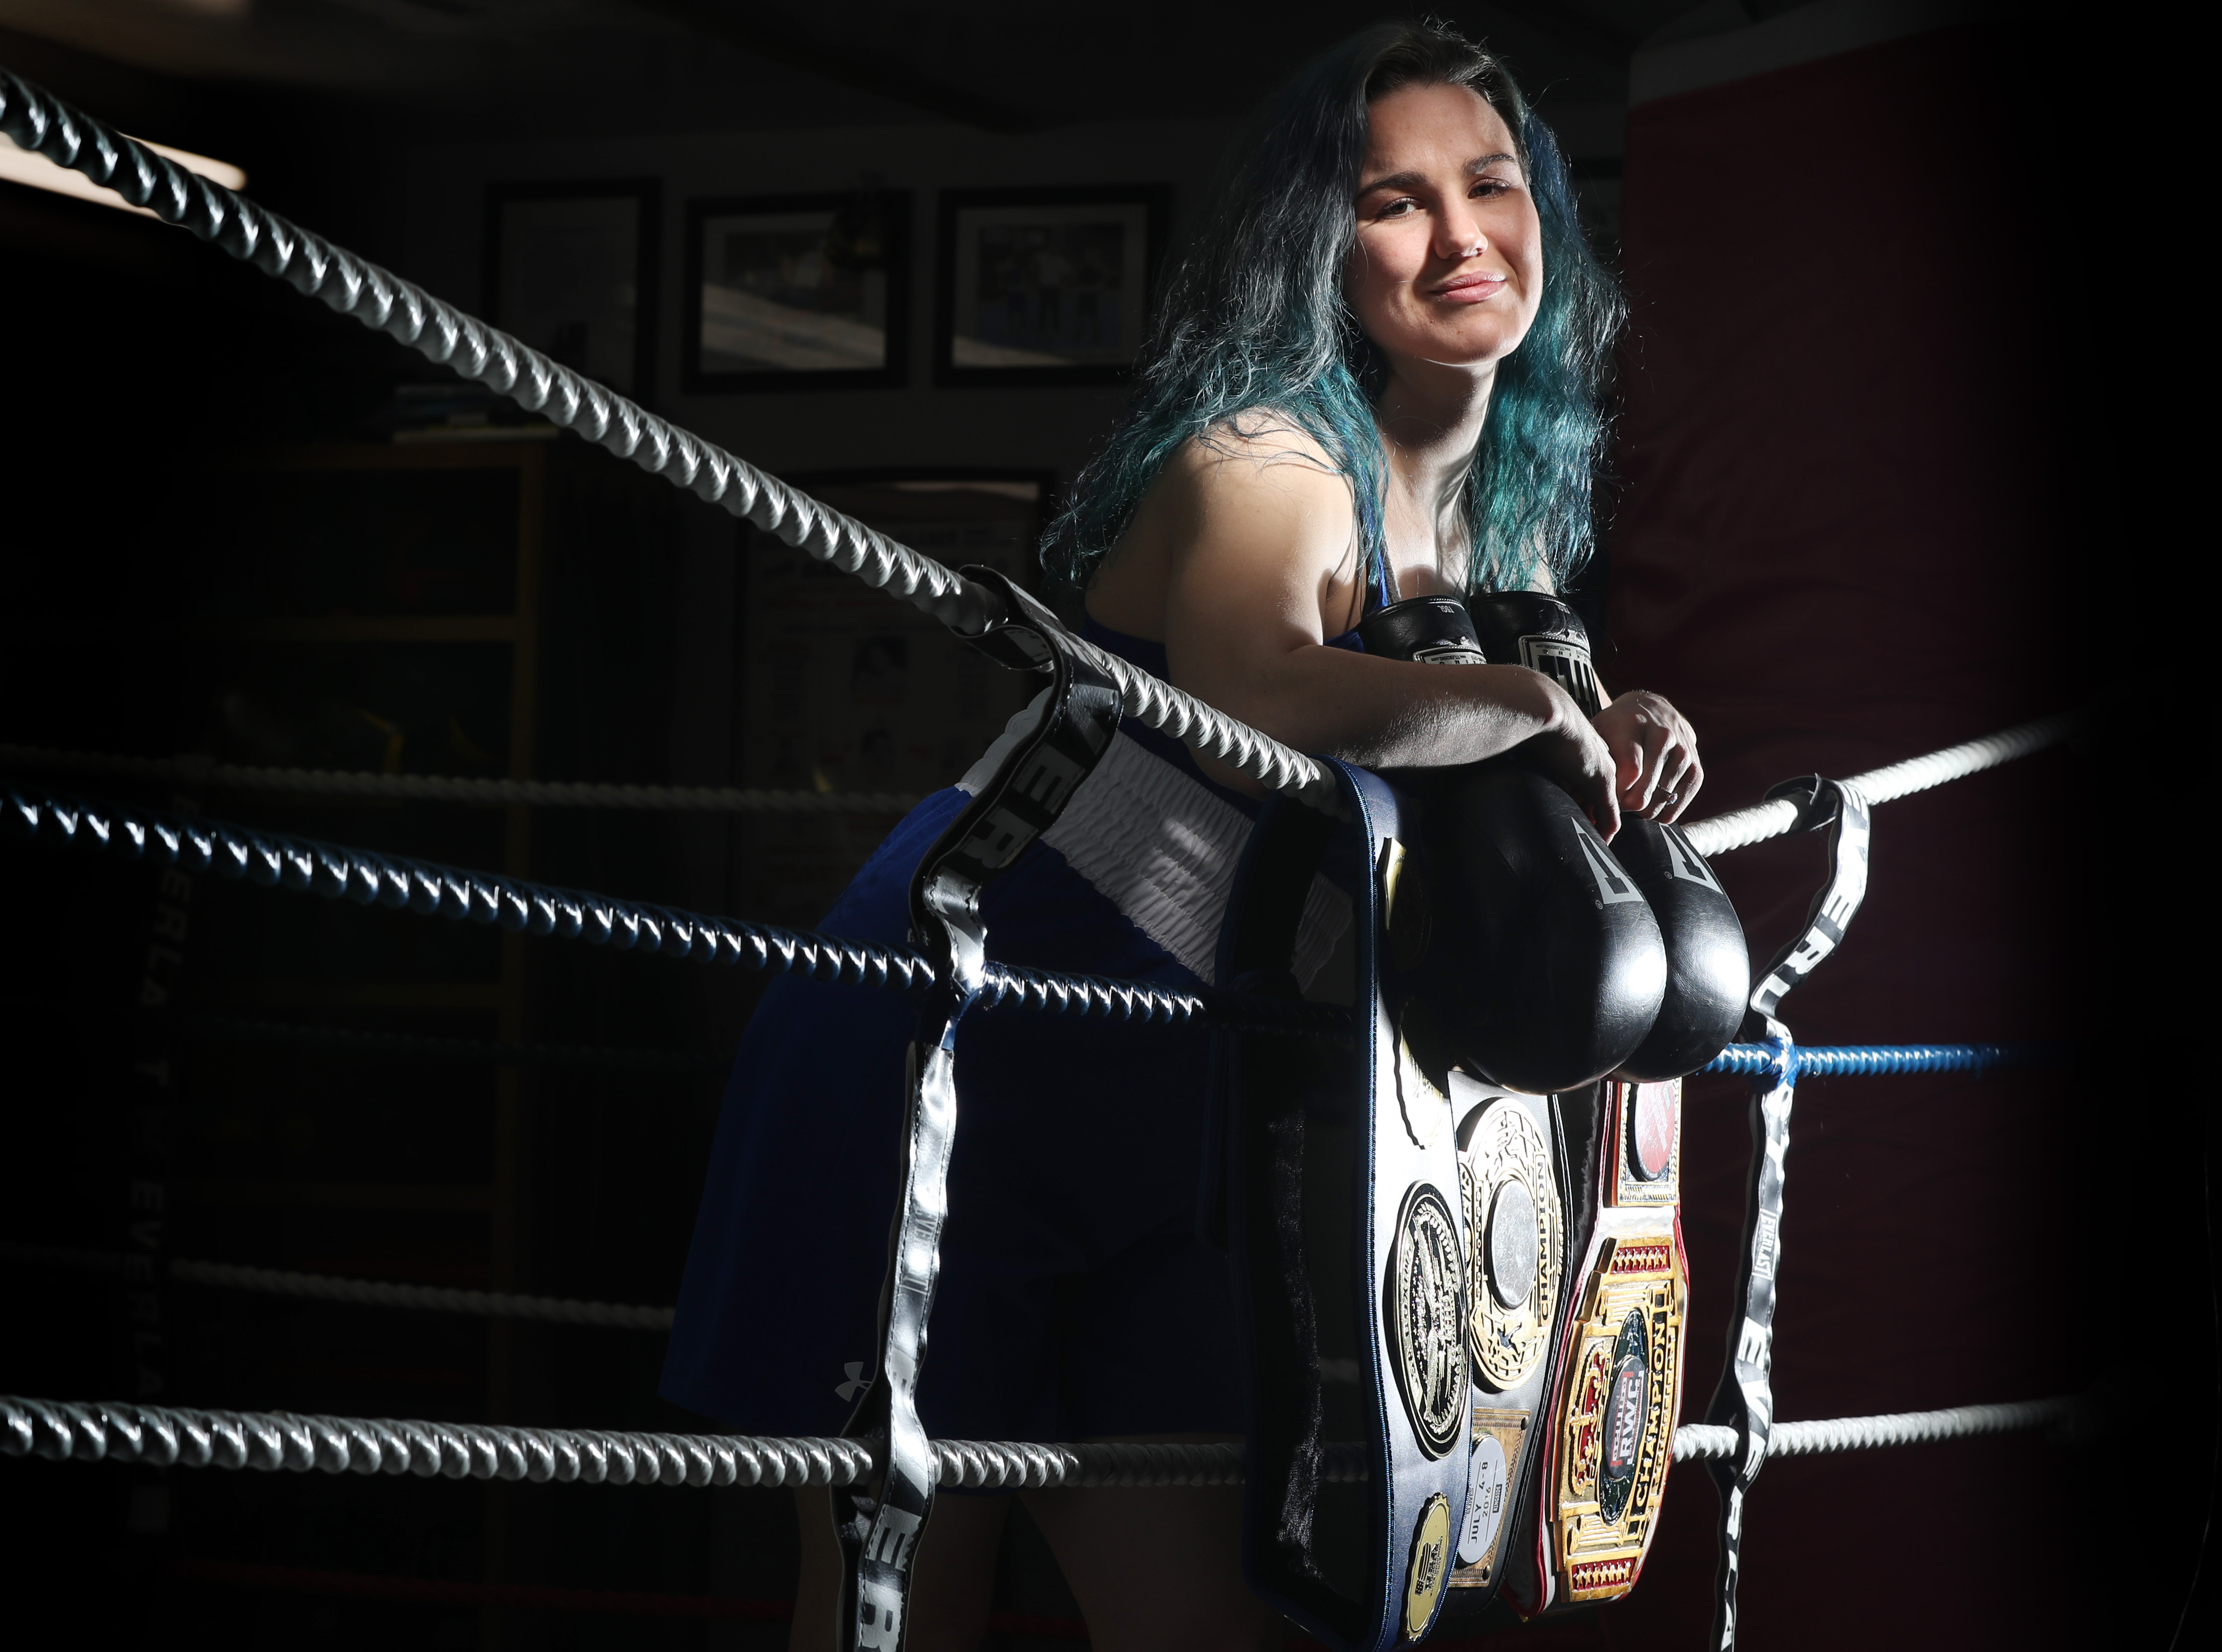 Everlast Tour 2020 Buffalo teacher is on fast track to Olympics via the boxing ring